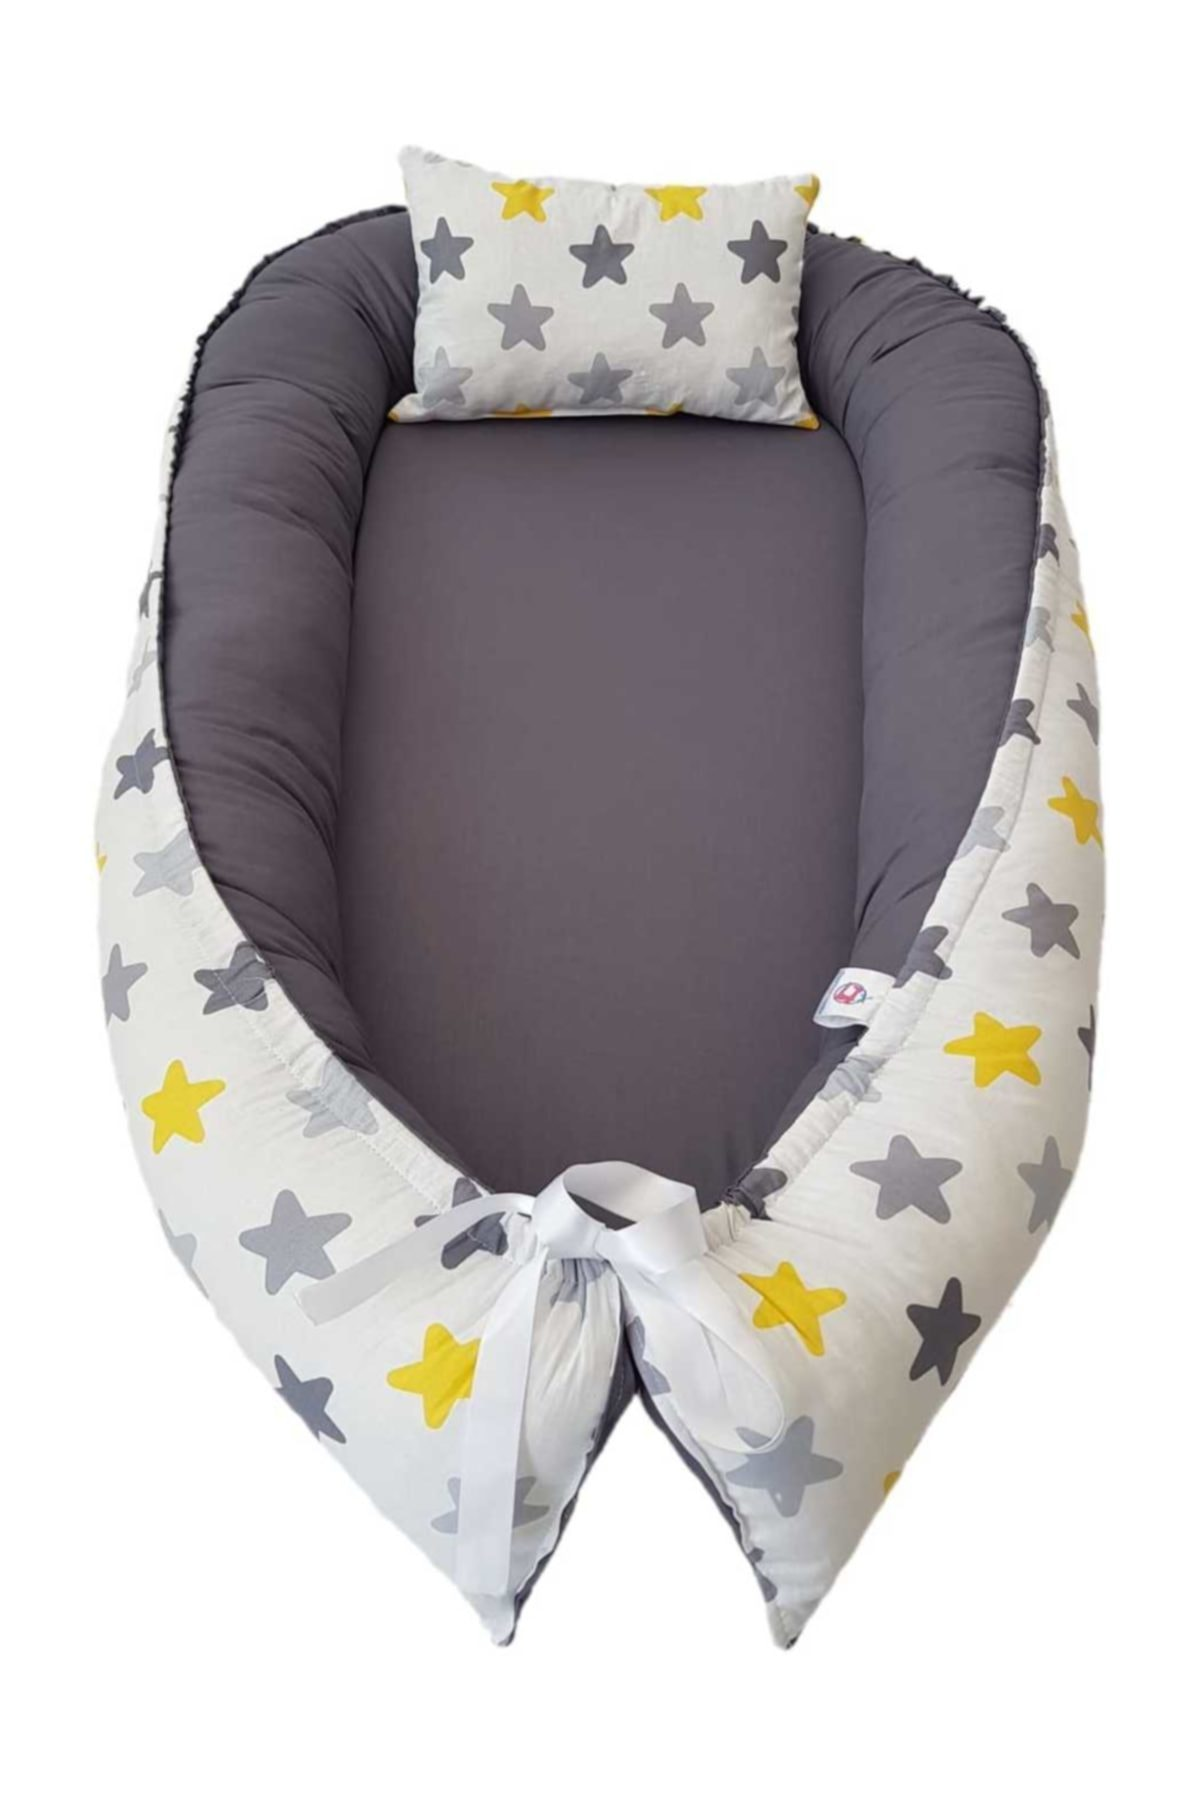 baby nest bed with pillow portable crib travel bed baby toddler cotton Babynest - Sleep And Play Cushion Cotton Fabric enlarge